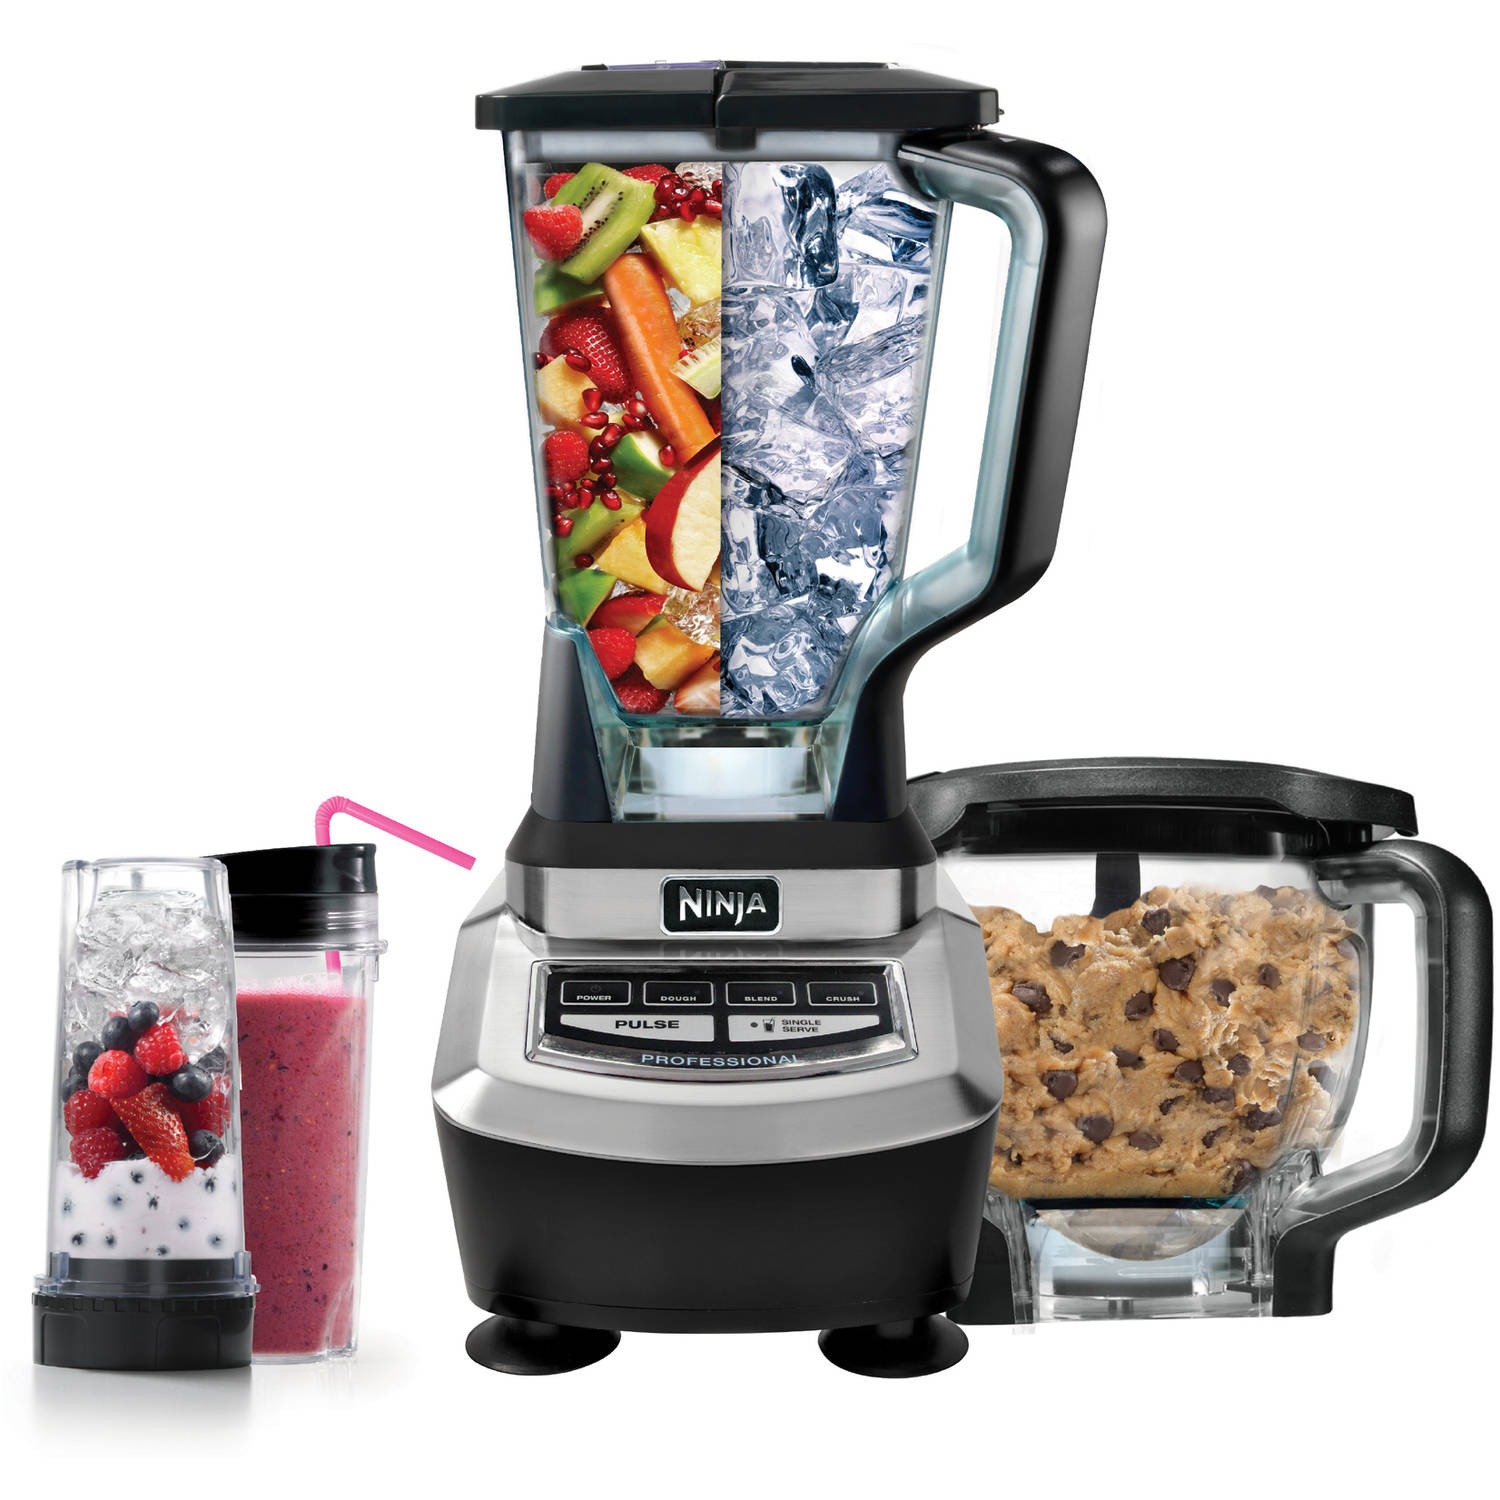 ninja supra kitchen blender system with food processor and single